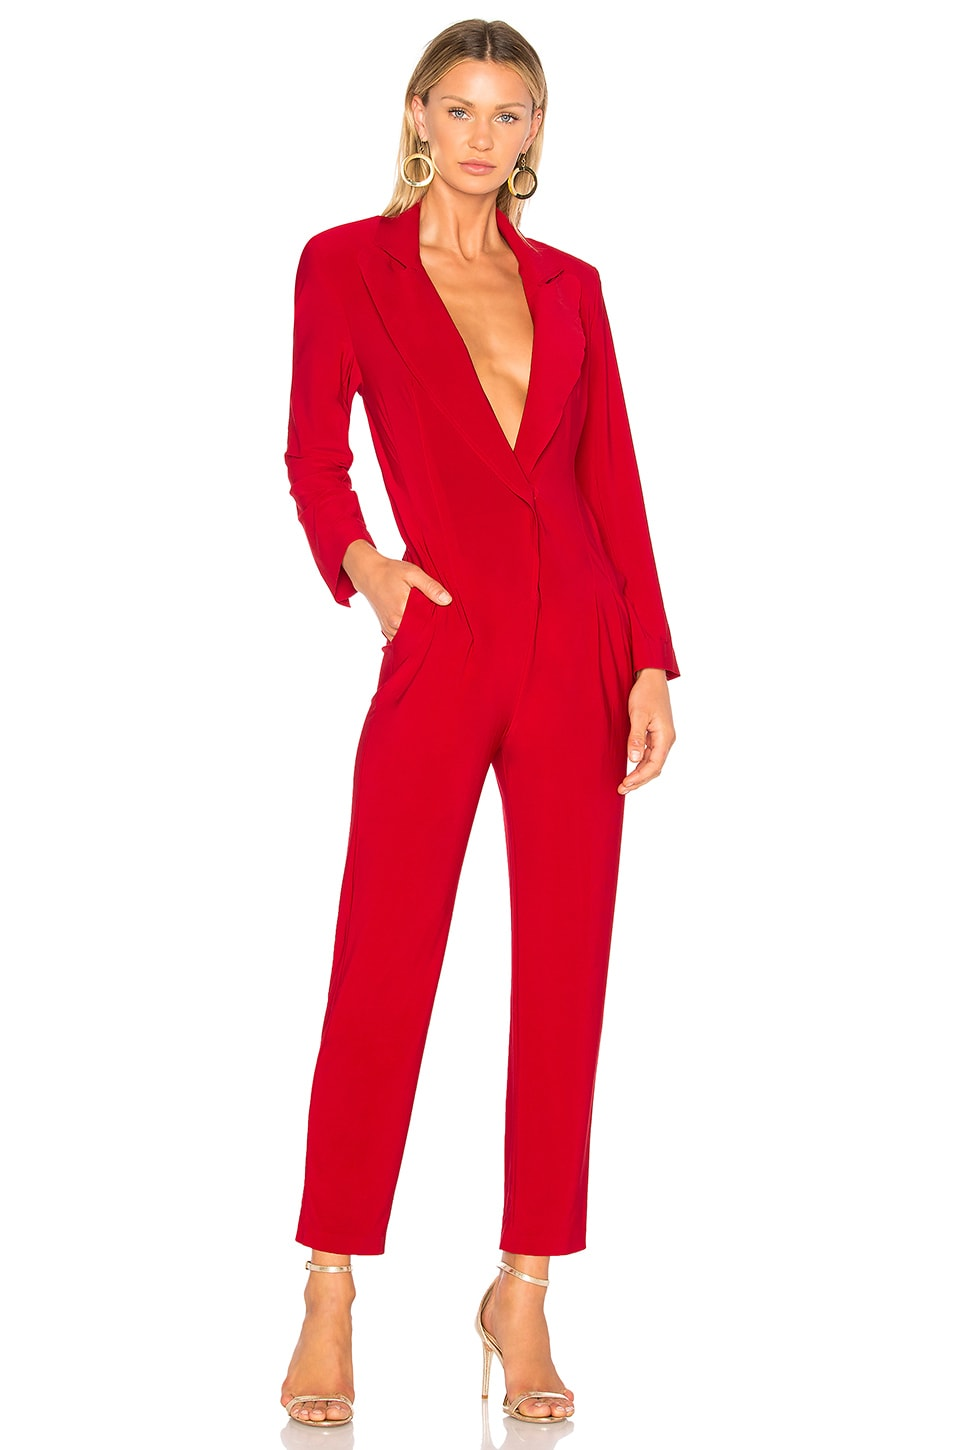 Norma Kamali Single Breasted Jumpsuit in Red